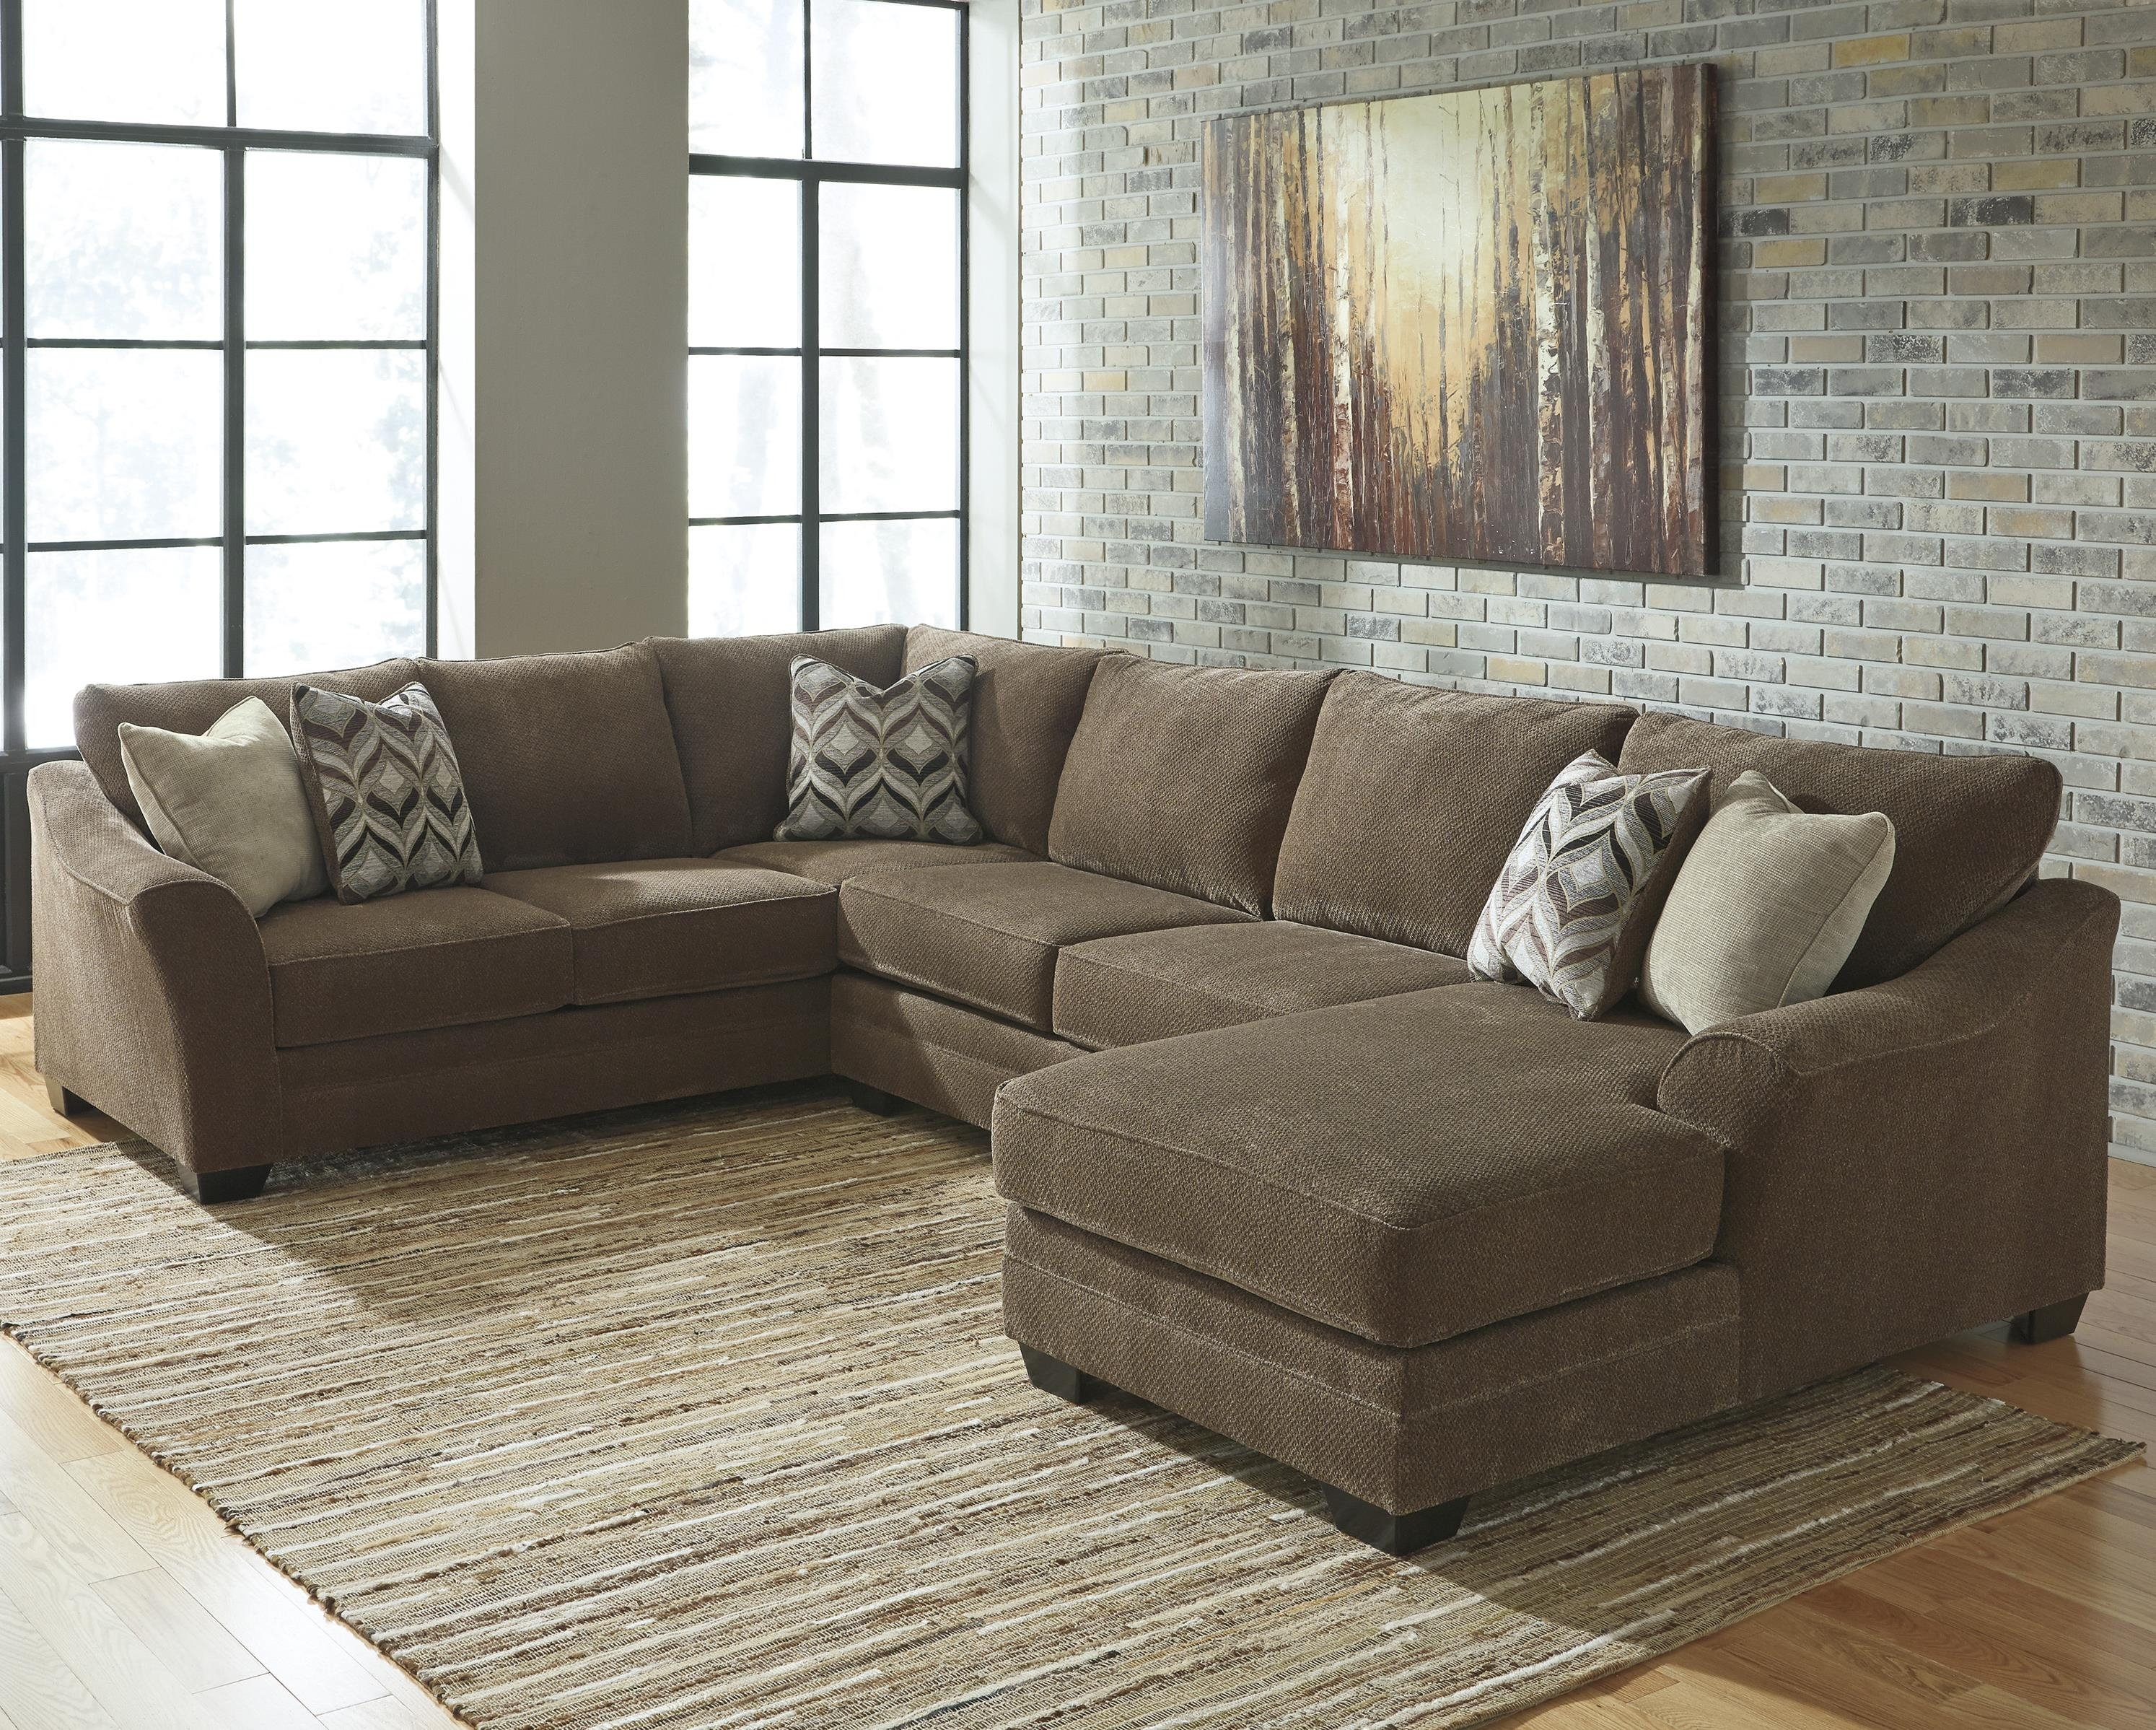 3 Piece Sectional – Locsbyhelenelorasa With Regard To Delano Smoke 3 Piece Sectionals (Photo 15 of 25)